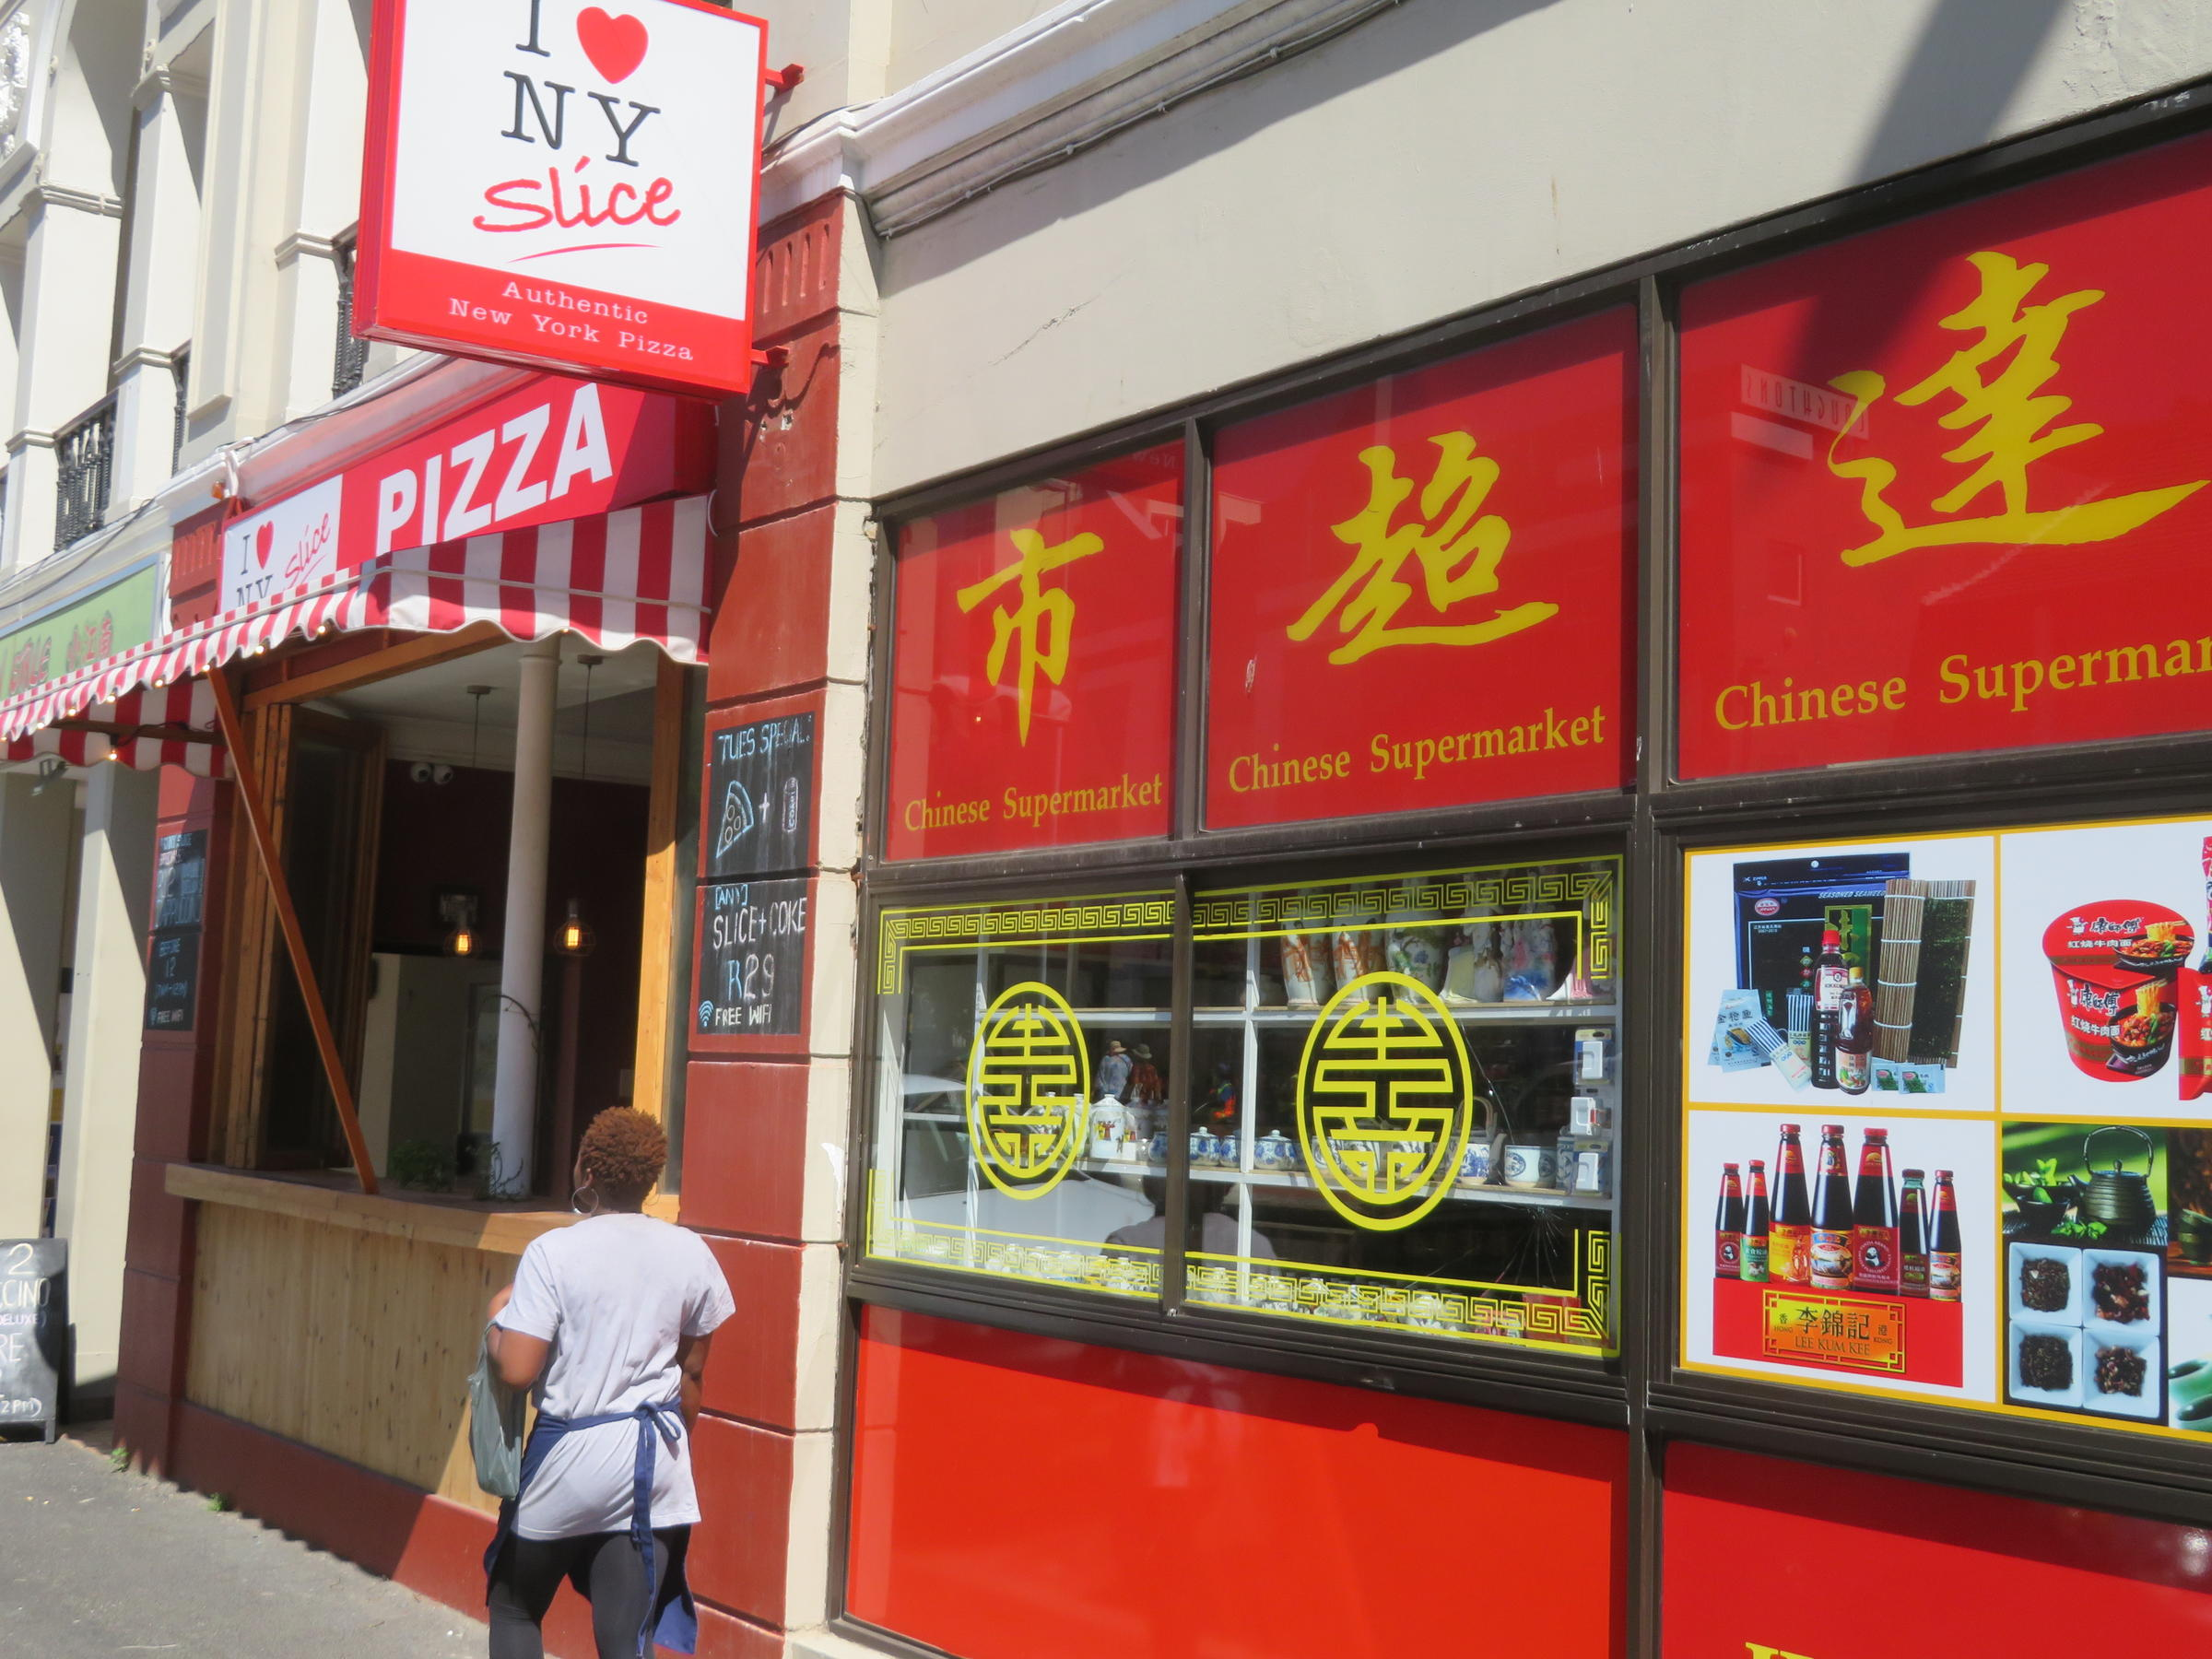 In The Cape Town Suburb Of Sea Point You Can Pick Up A Slice New York Style Pizza After Popping Into Hong Da Asian Supermarket